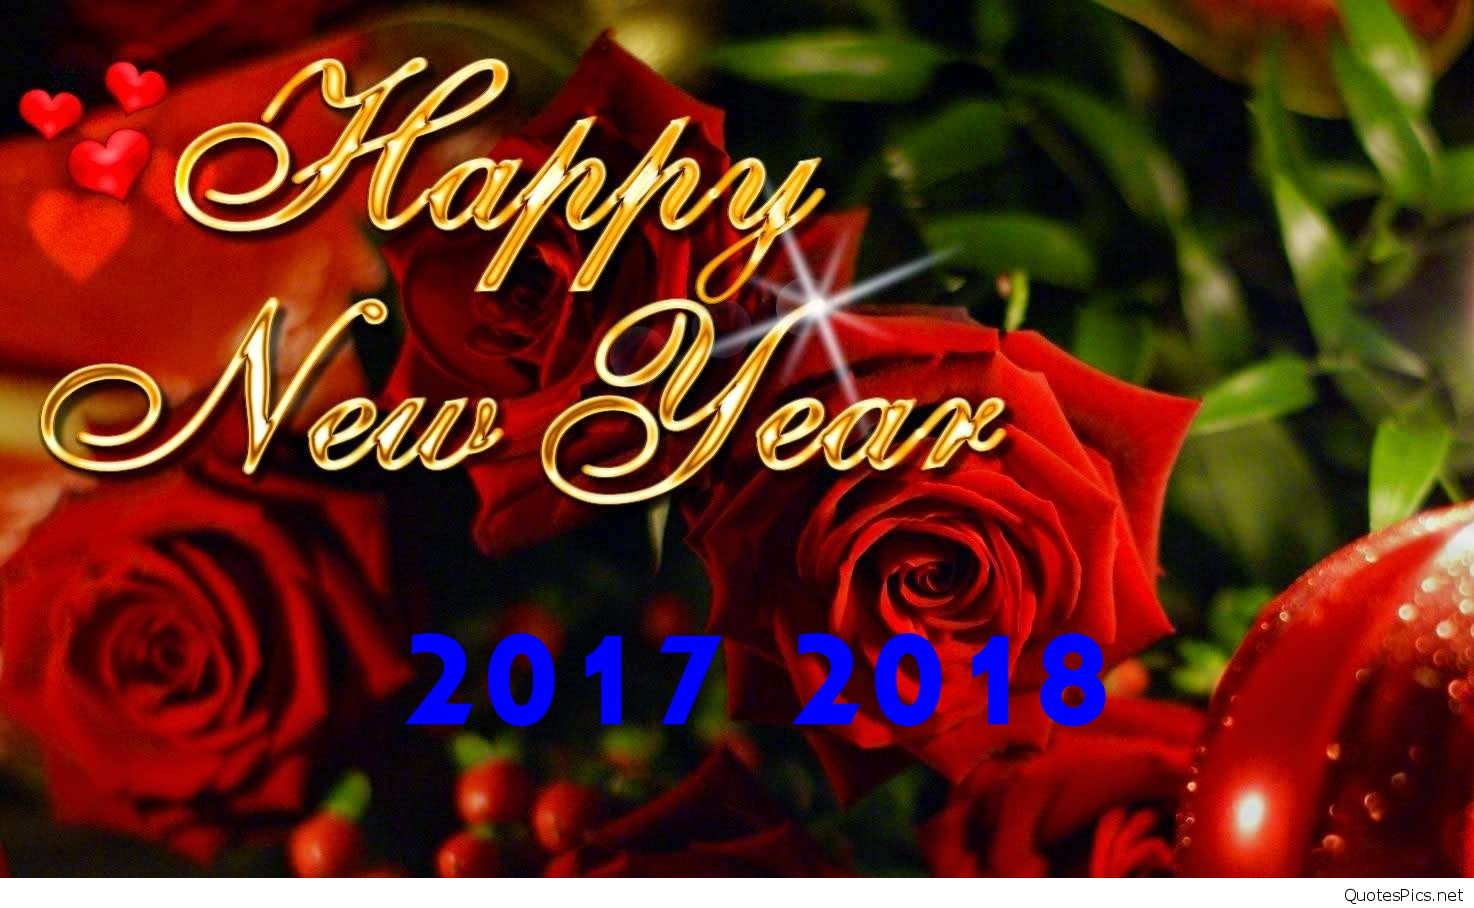 New Wallpaper Happy New Year 2018 - Happy Valentines Day Roses , HD Wallpaper & Backgrounds